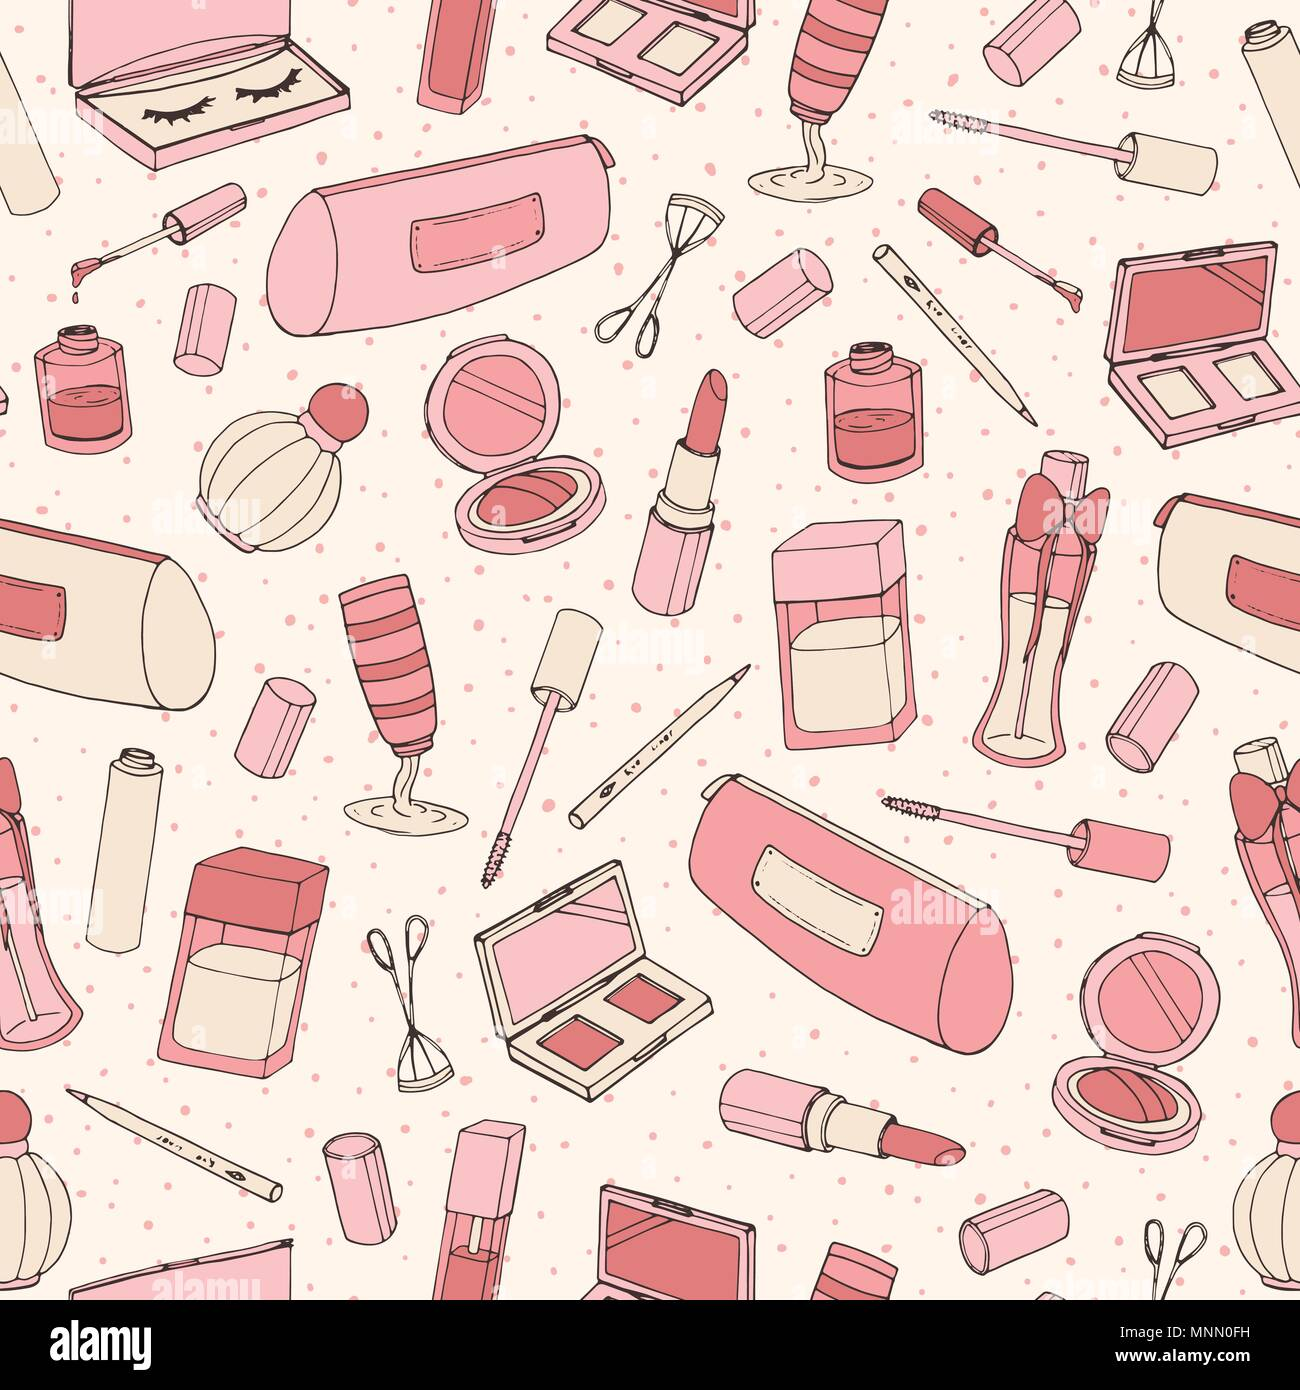 a583581be85 Hand drawn cosmetics pattern with parfume bottles, nail lacquer, lipstick,  eye shadows and